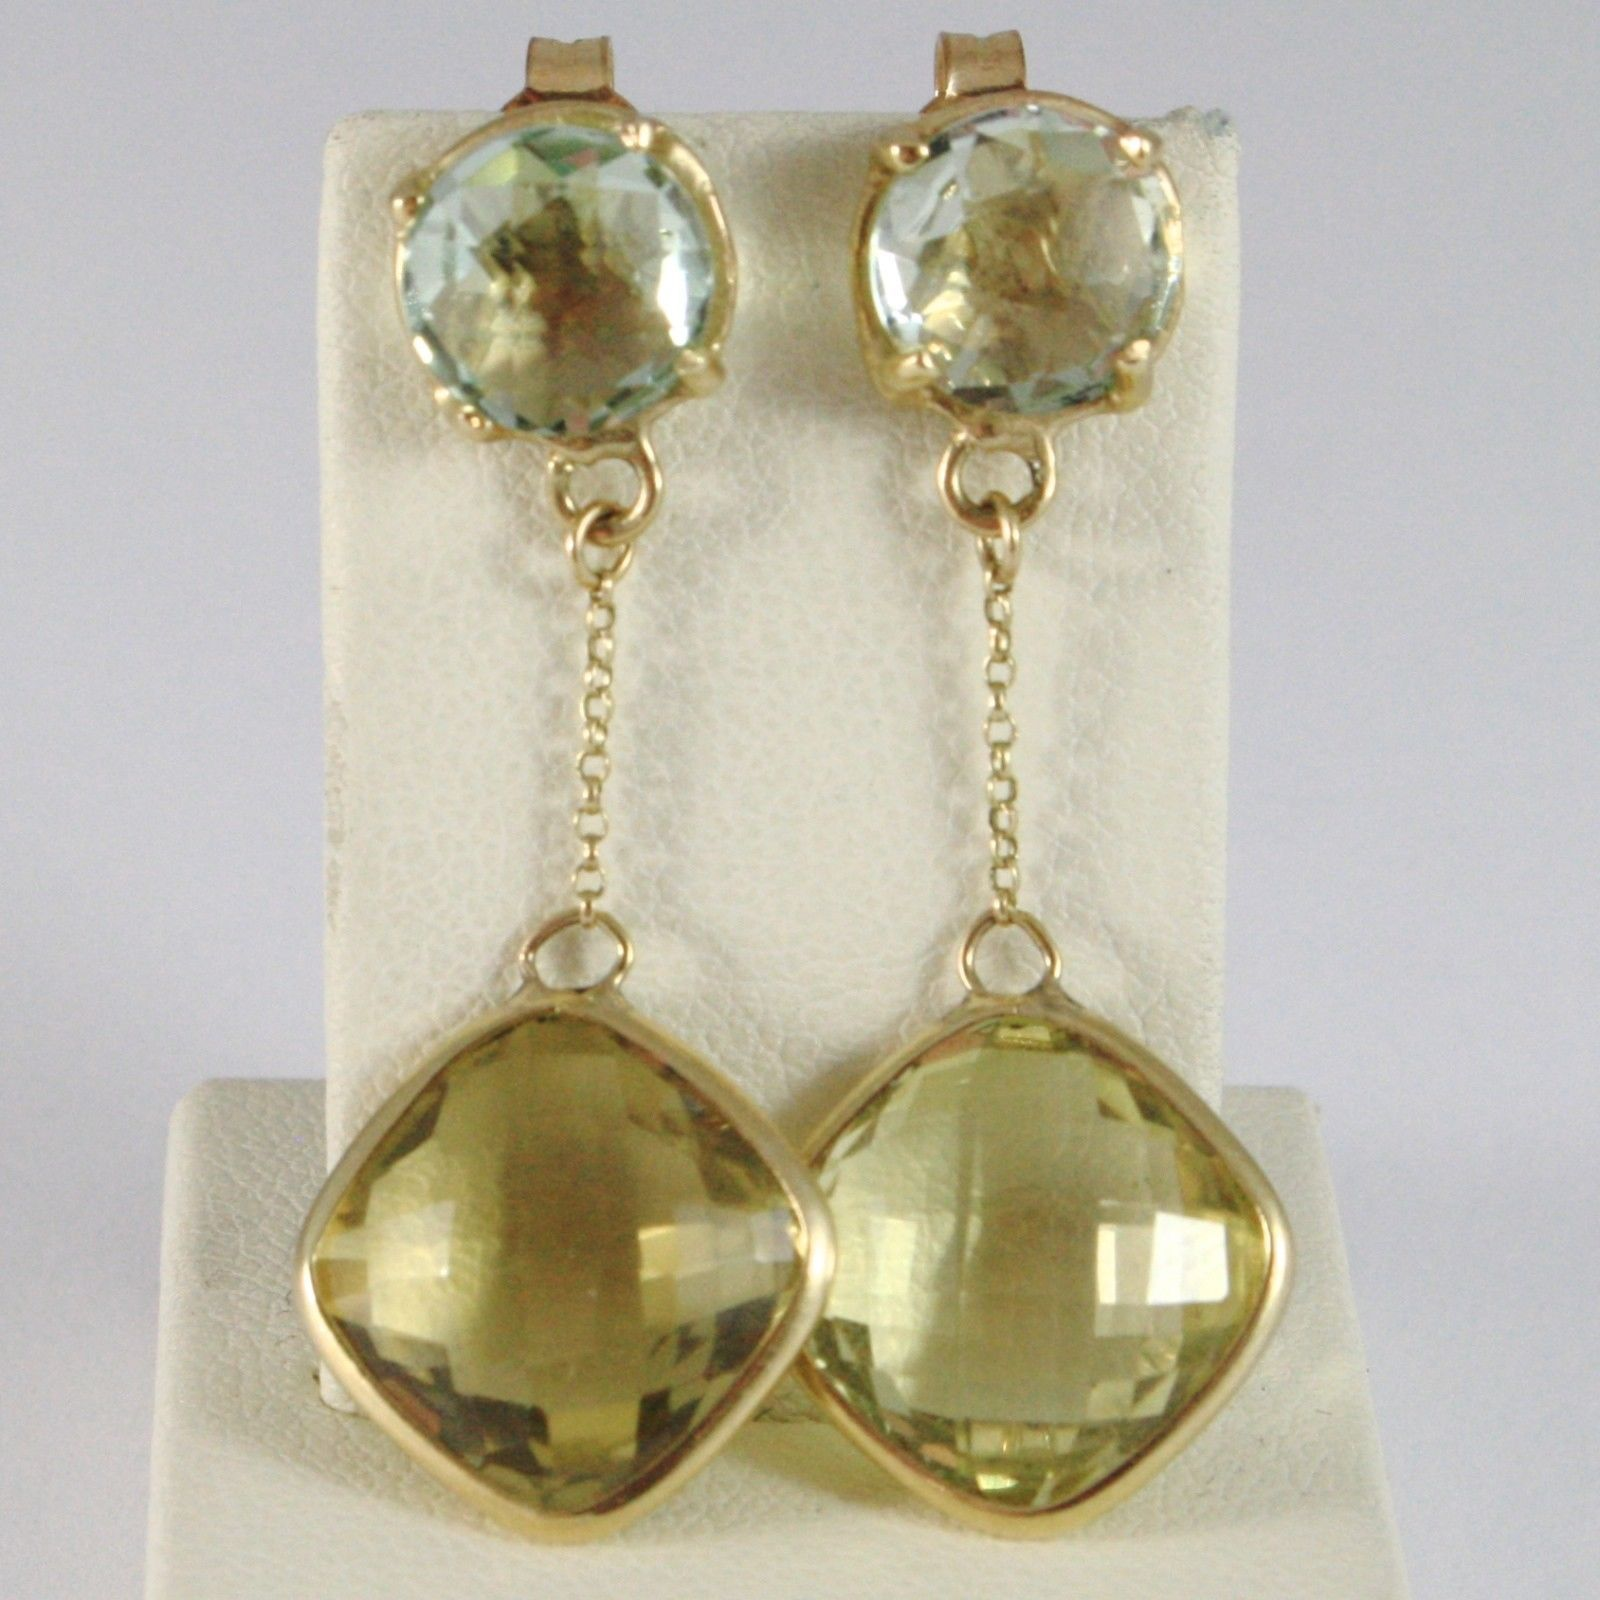 YELLOW GOLD EARRINGS 375 9K HANGING WITH QUARTZ CITRINE AND PRASIOLITE, CUSHION